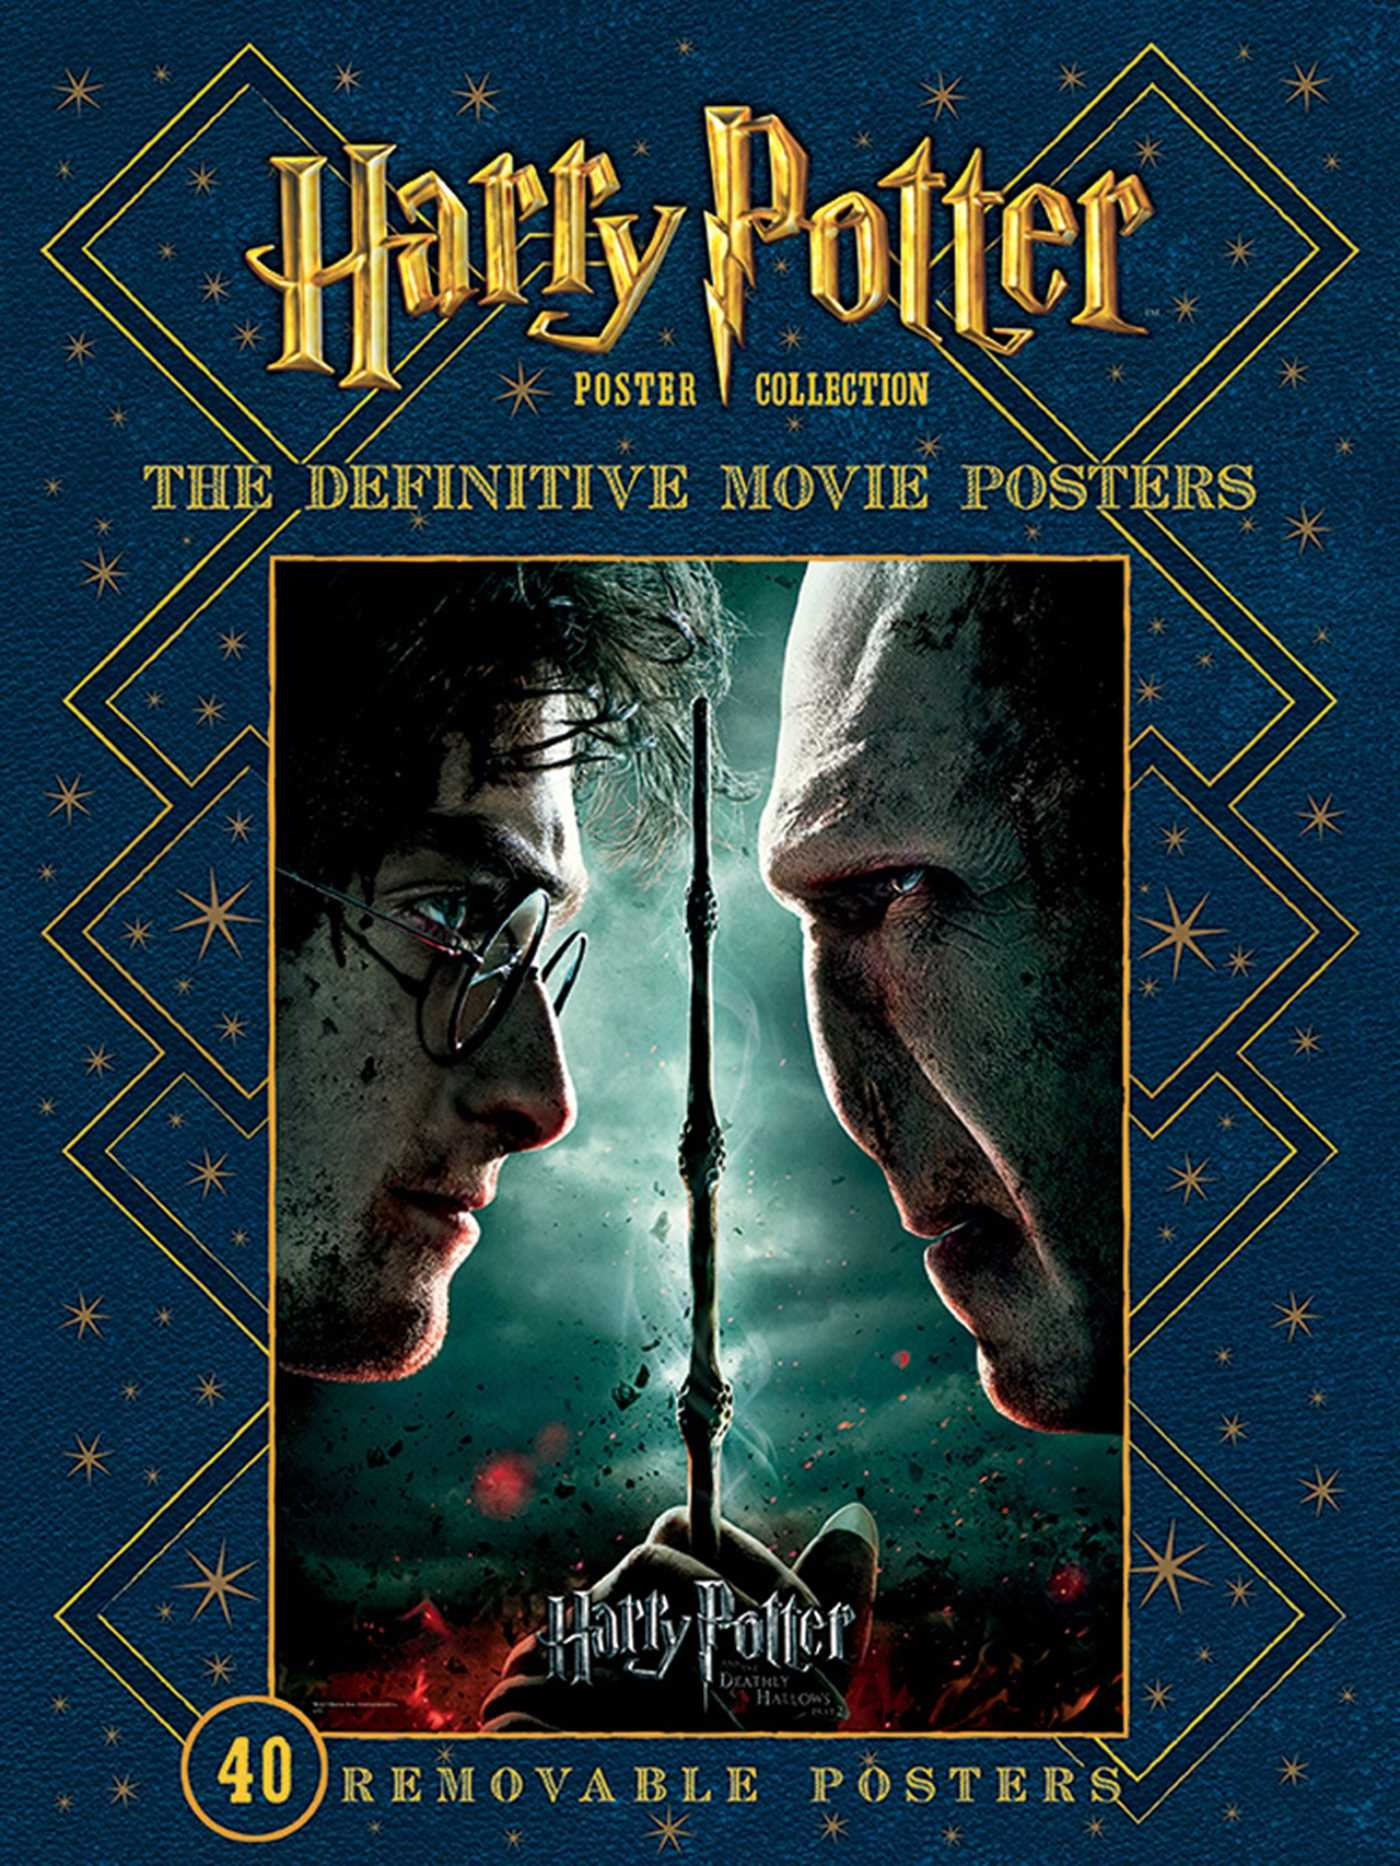 Amazon Com Harry Potter Poster Collection The Definitive Movie Posters Insights Poster Collections 8601417121375 Warner Bros Consumer Products Inc Books